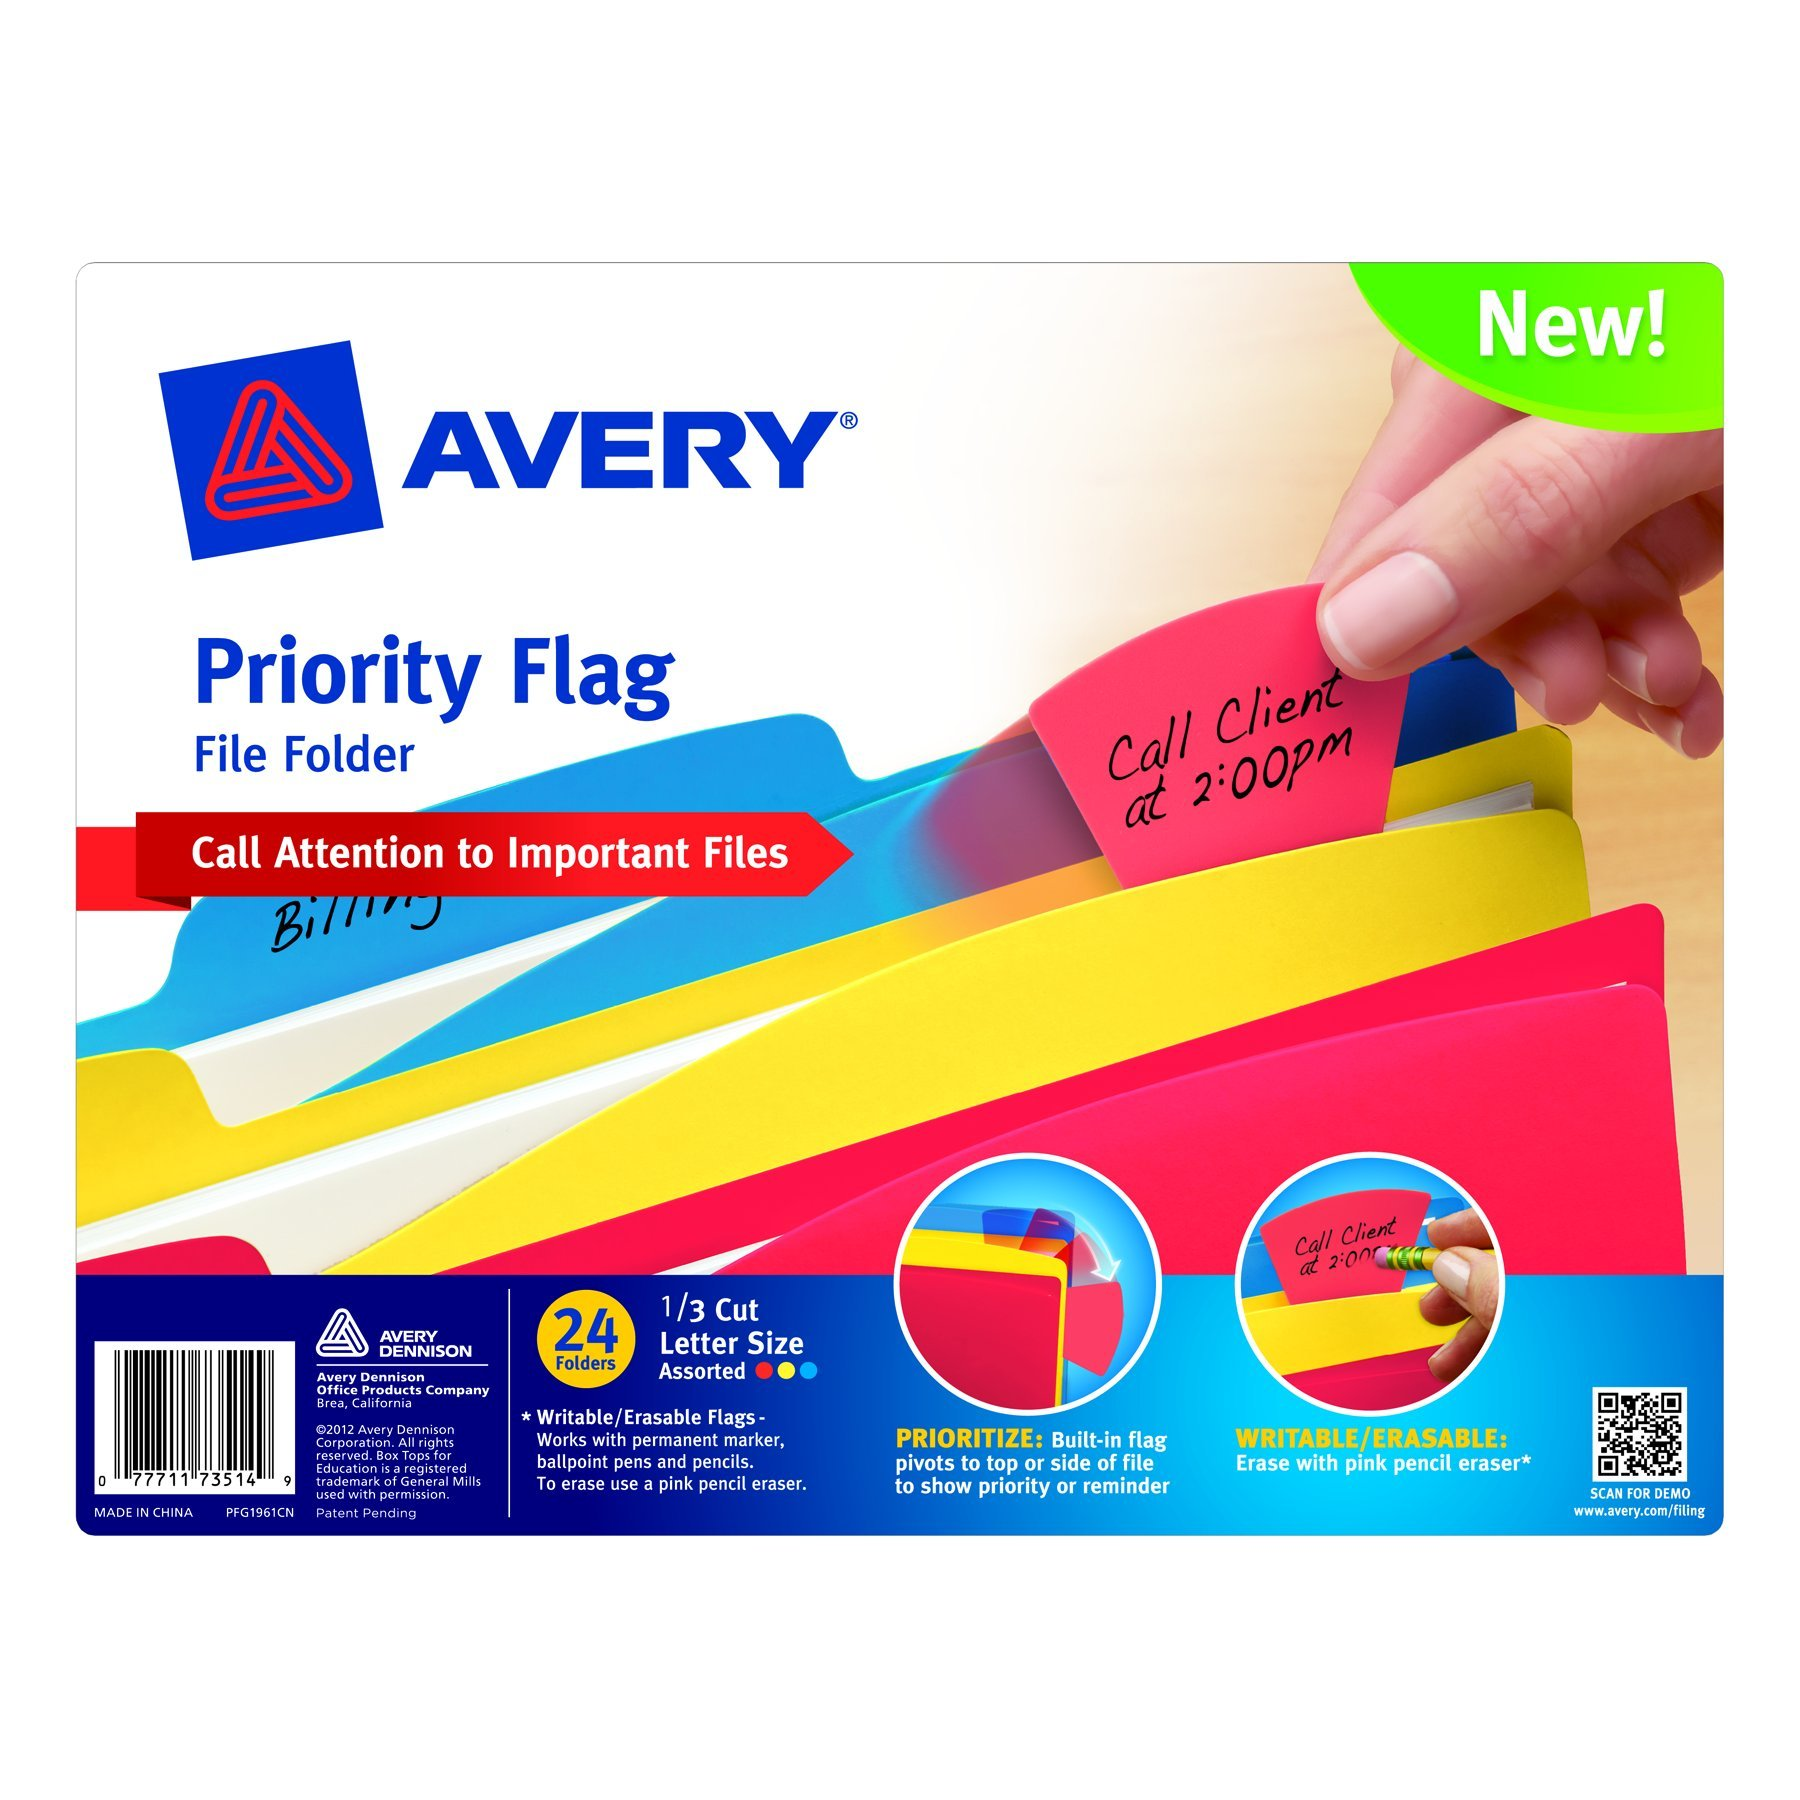 Avery Assorted Color File Folder with Priority Flag, 1/3 Cut, Letter Size, Pack of 24 (73514)